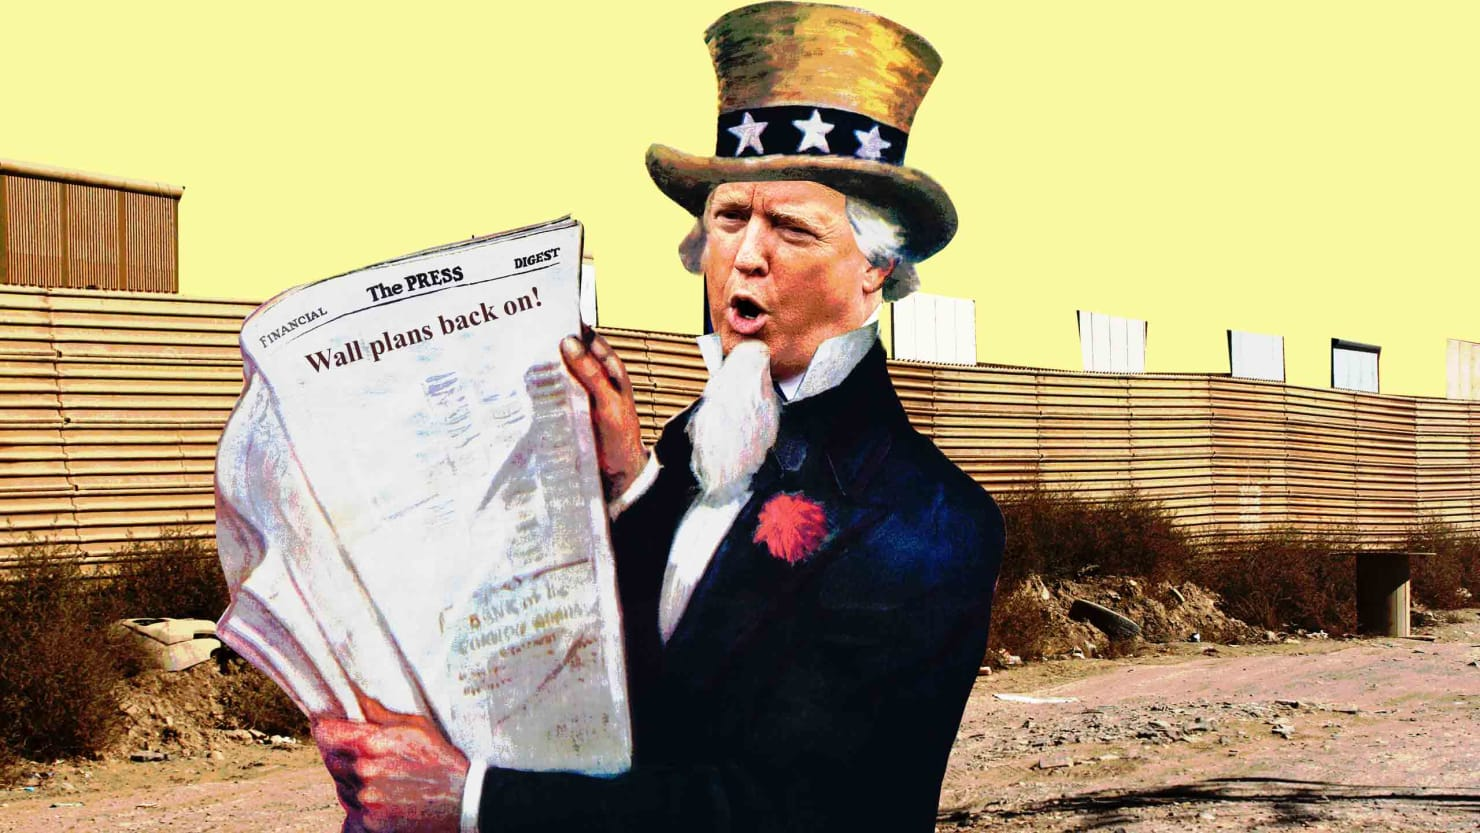 Trump And The Gop Immediately Blamed Illegal Immigrants